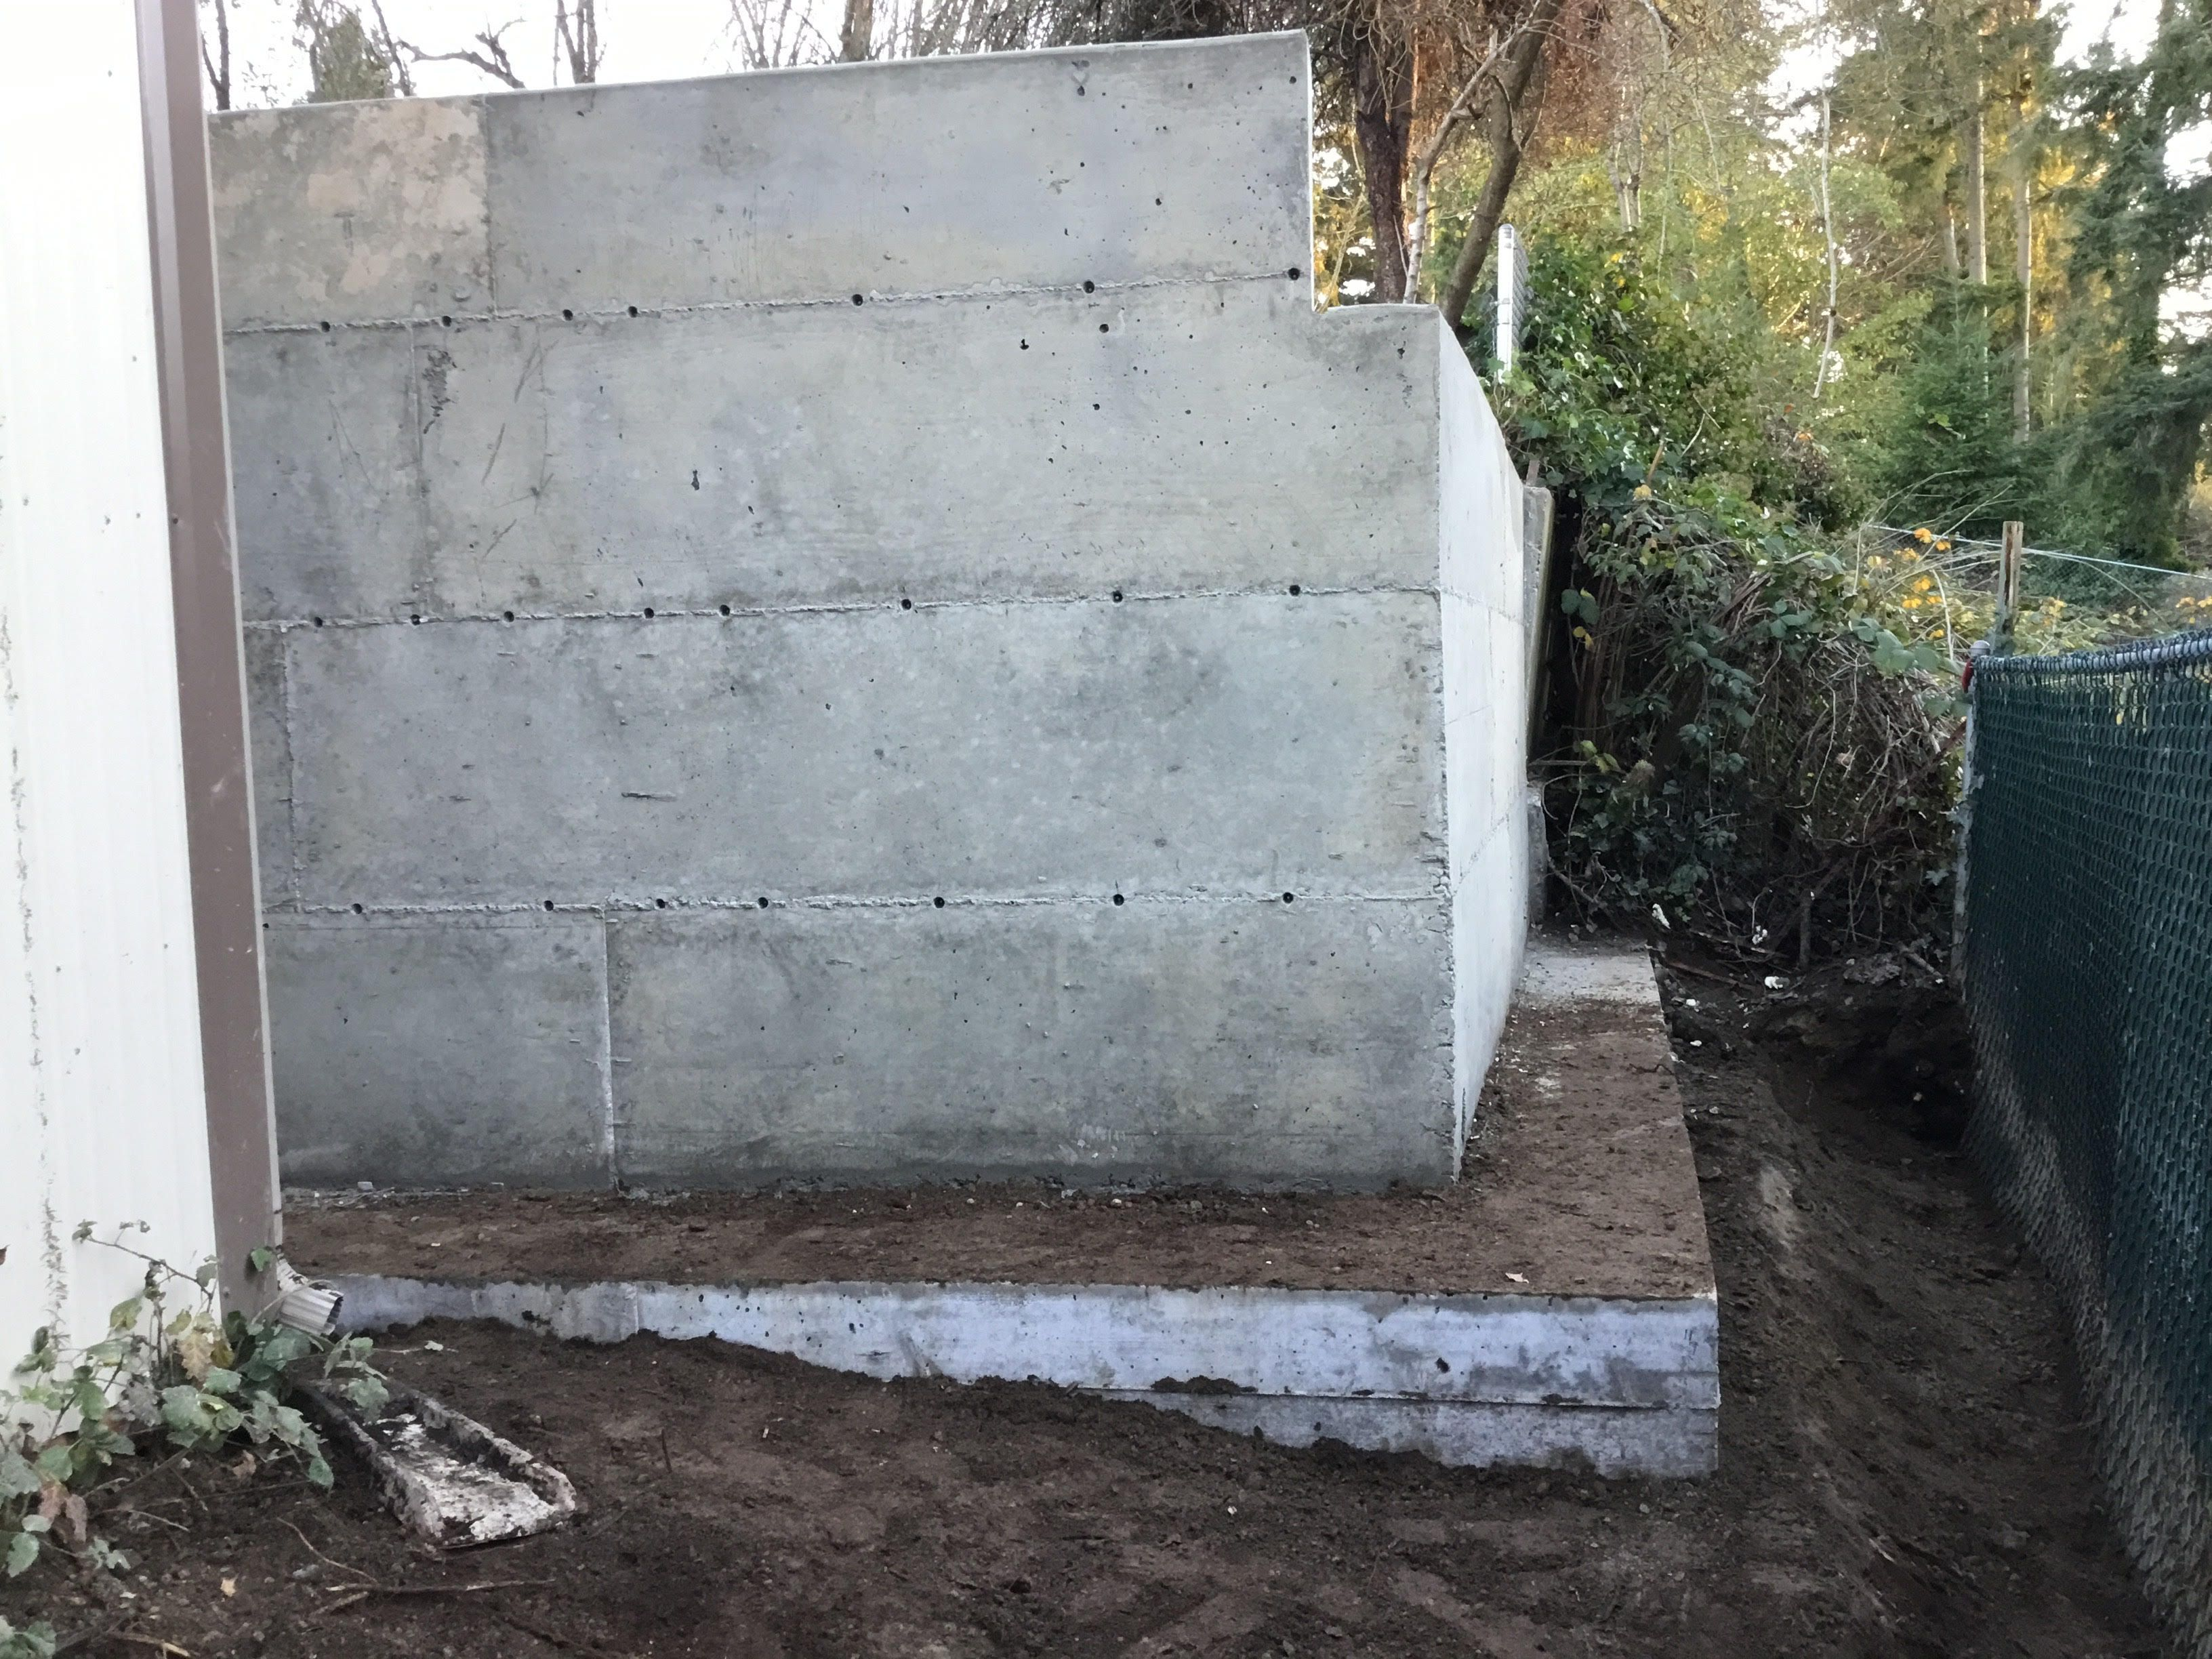 R R Foundation Specialist Job Photos From A Foundation And Retaining Wall Repair Job In Lynnwood Wa Retaining Wall Repair Foundation Repair Retaining Wall